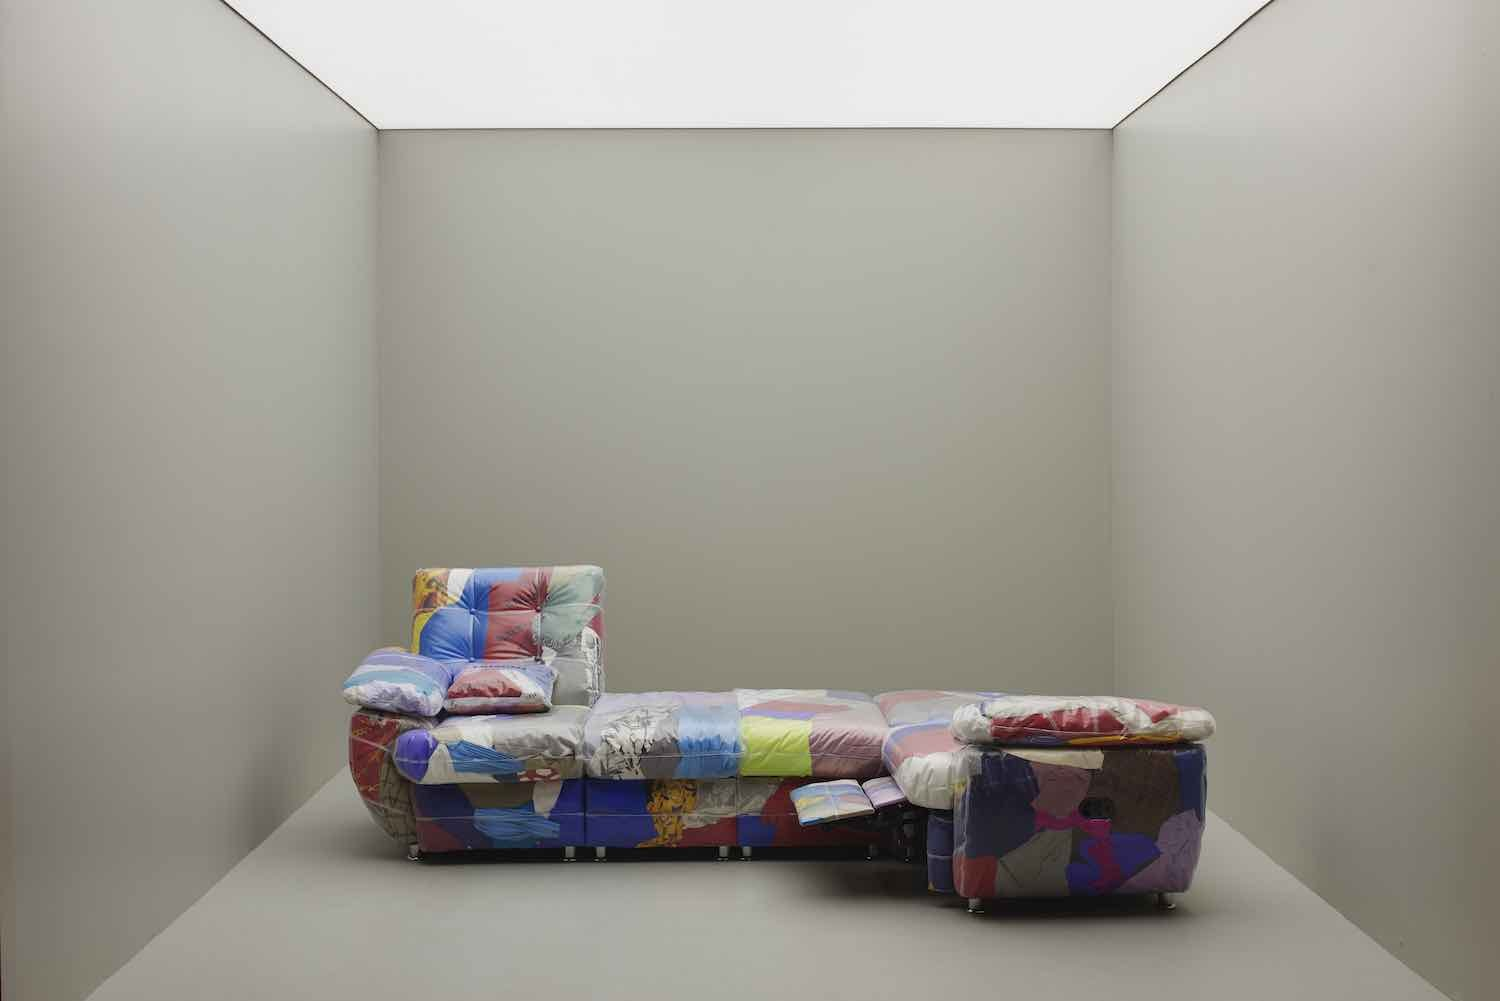 Crosby Studio's BALENCIAGA SOFA by Harry NurIev in collaboration with Balenciaga - Photo by James Harris.